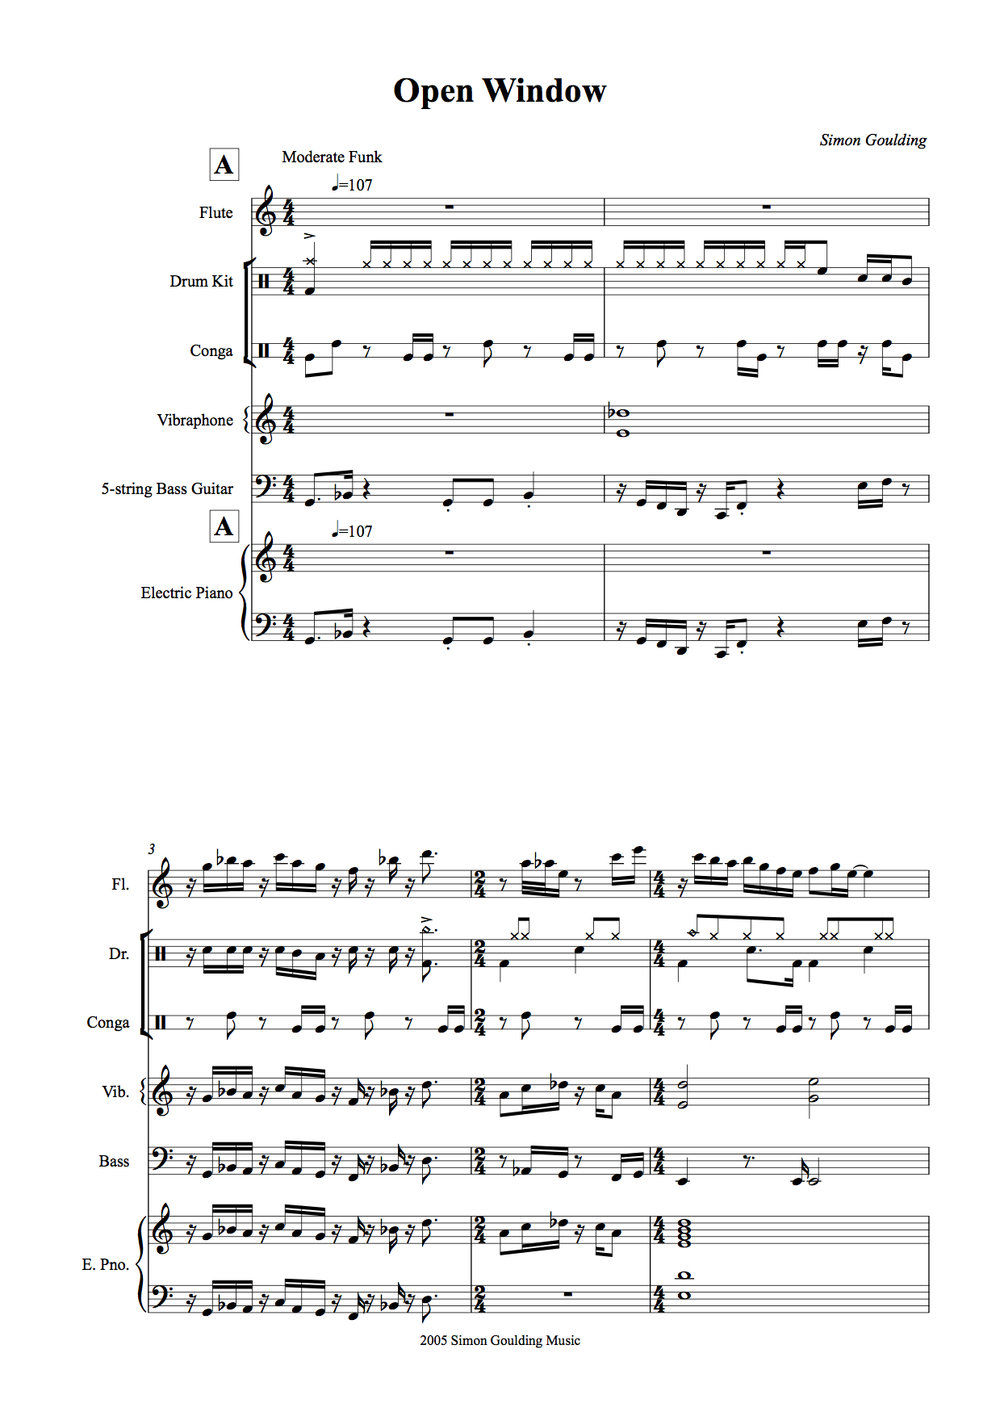 Open window concert score -